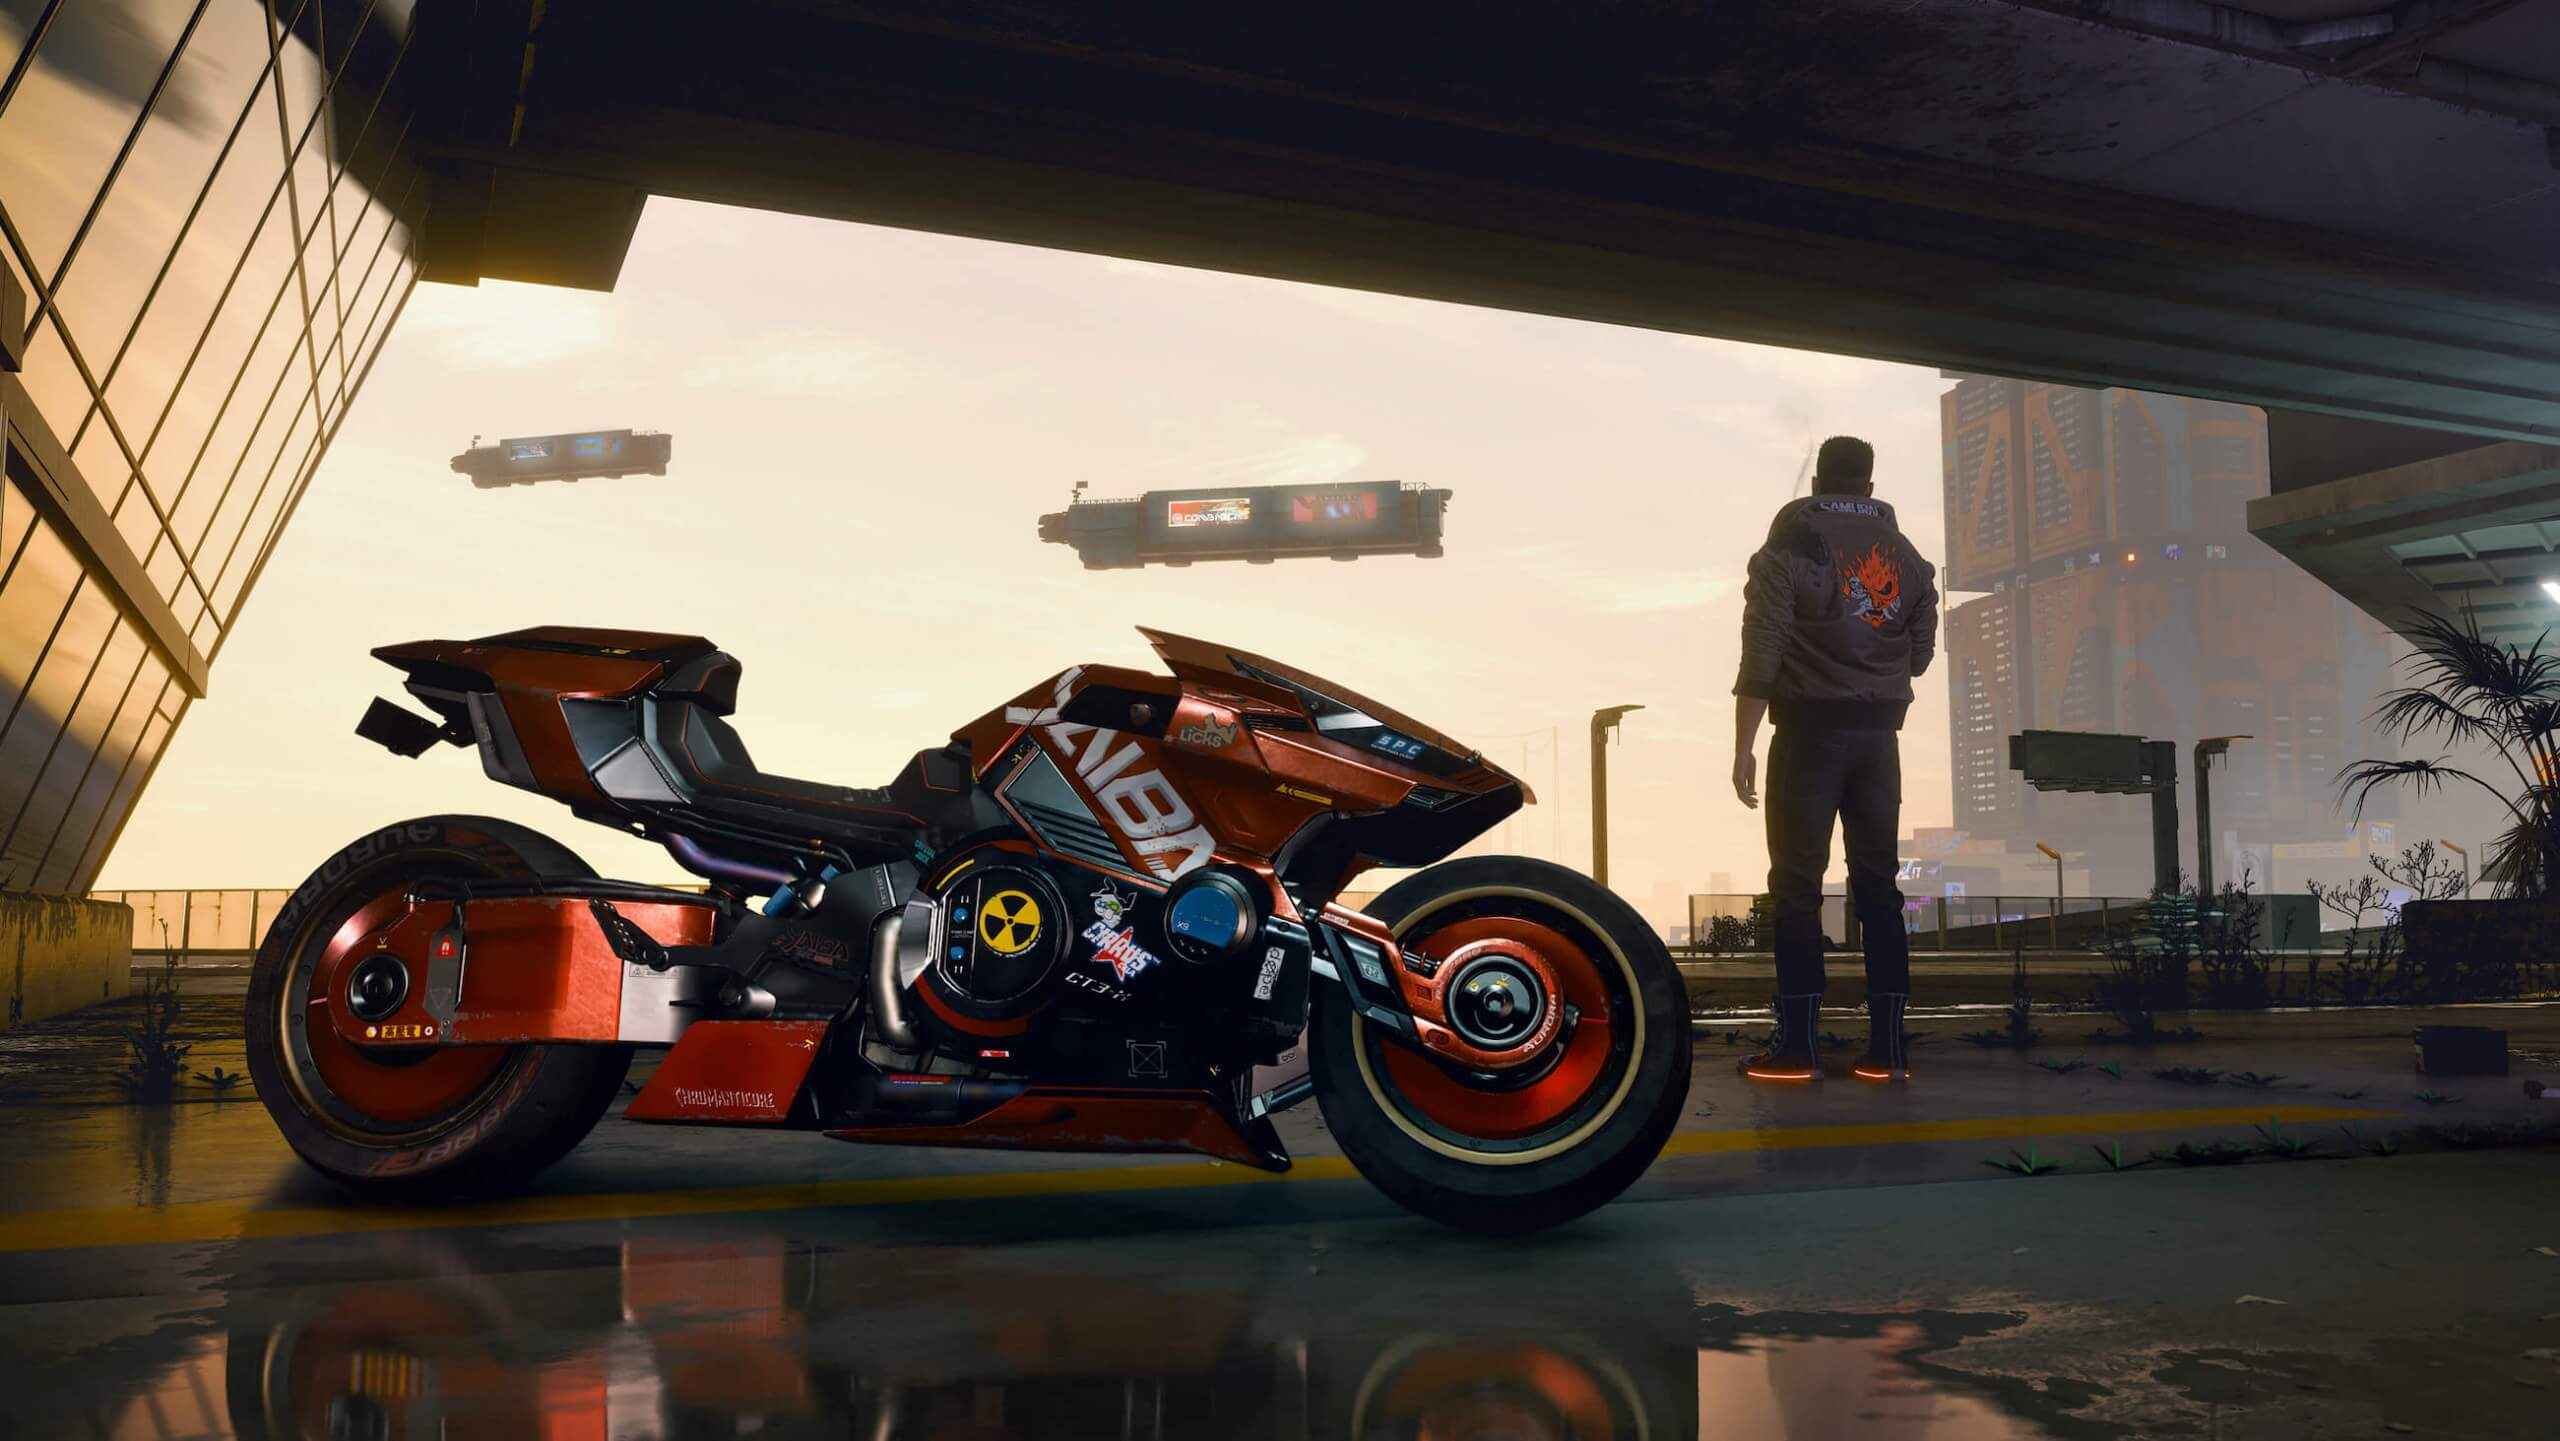 You'll be able to stream and play Cyberpunk 2077 through GeForce Now on launch day, ray tracing and all